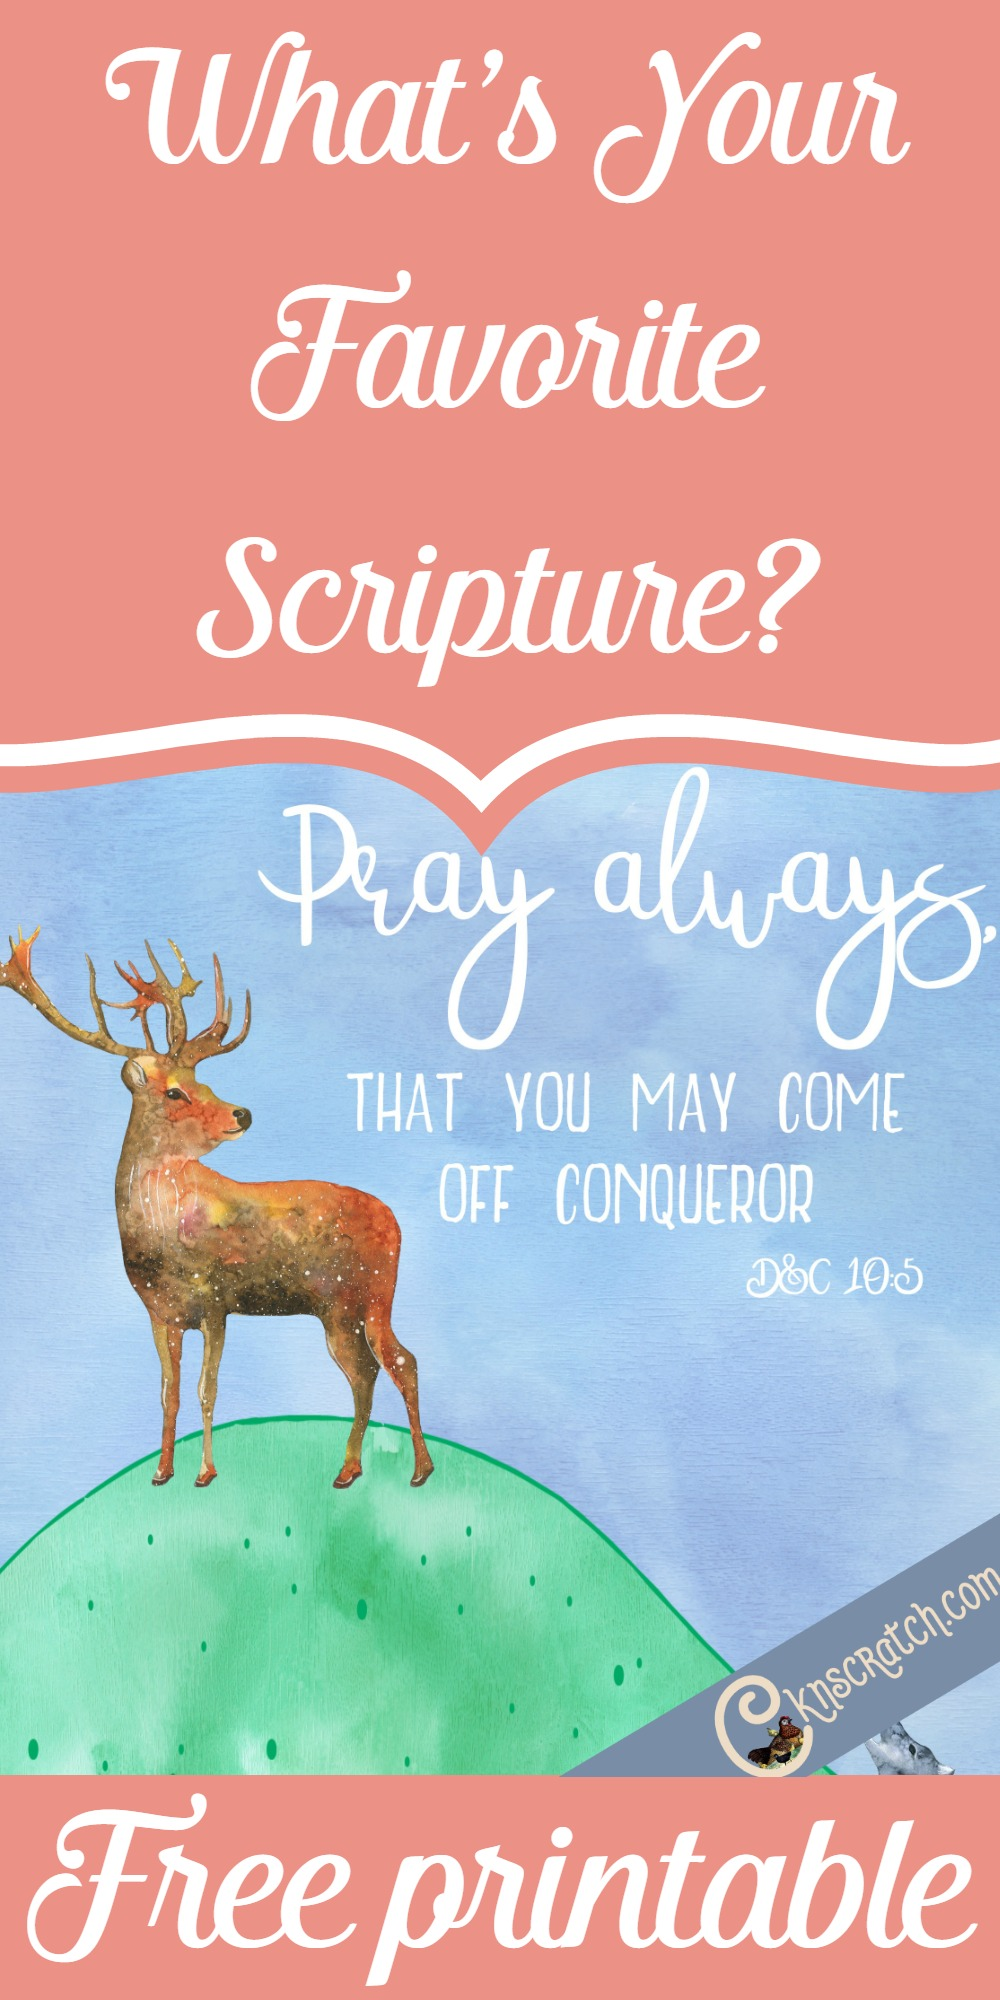 How pretty is this free scripture printable? Love it! D&C 10:5